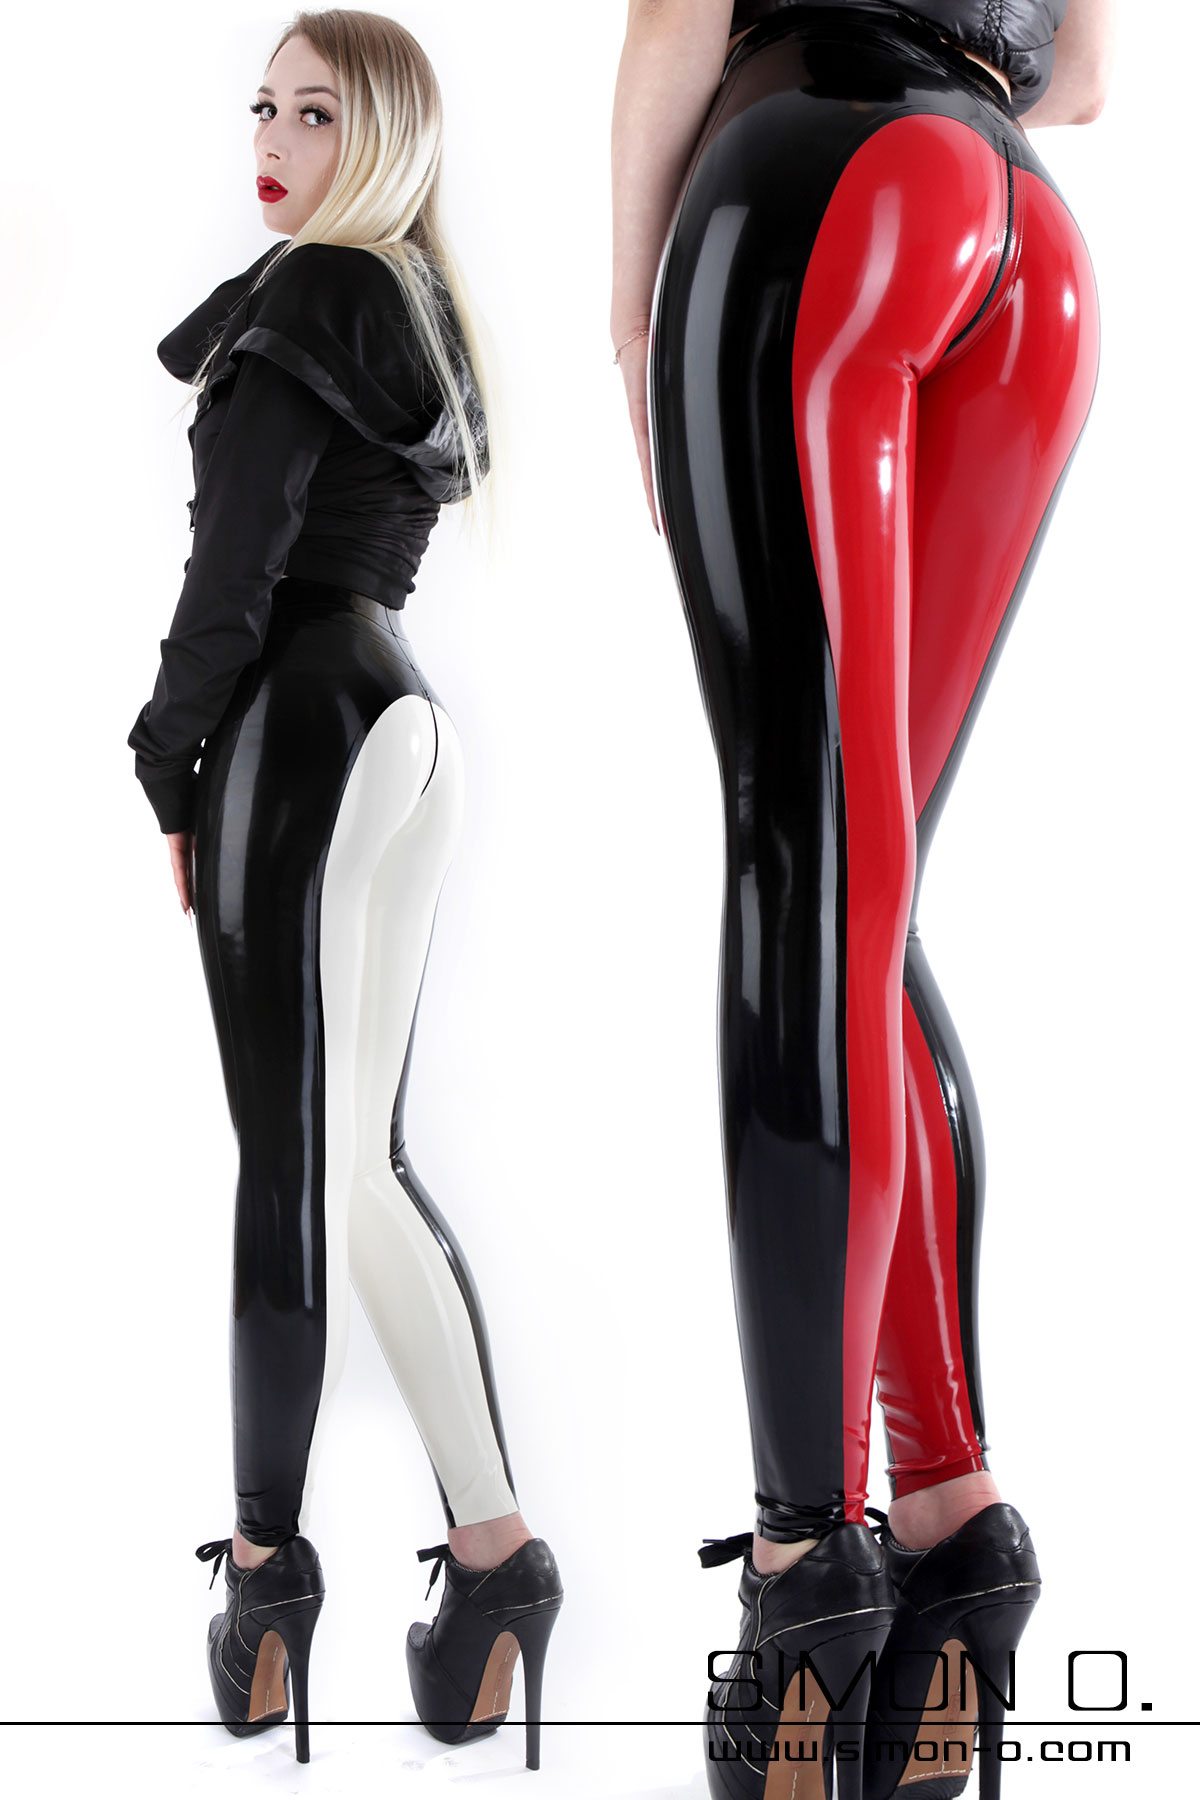 Skintight latex breeches with zip in the cut area in the colours black with red and black with white